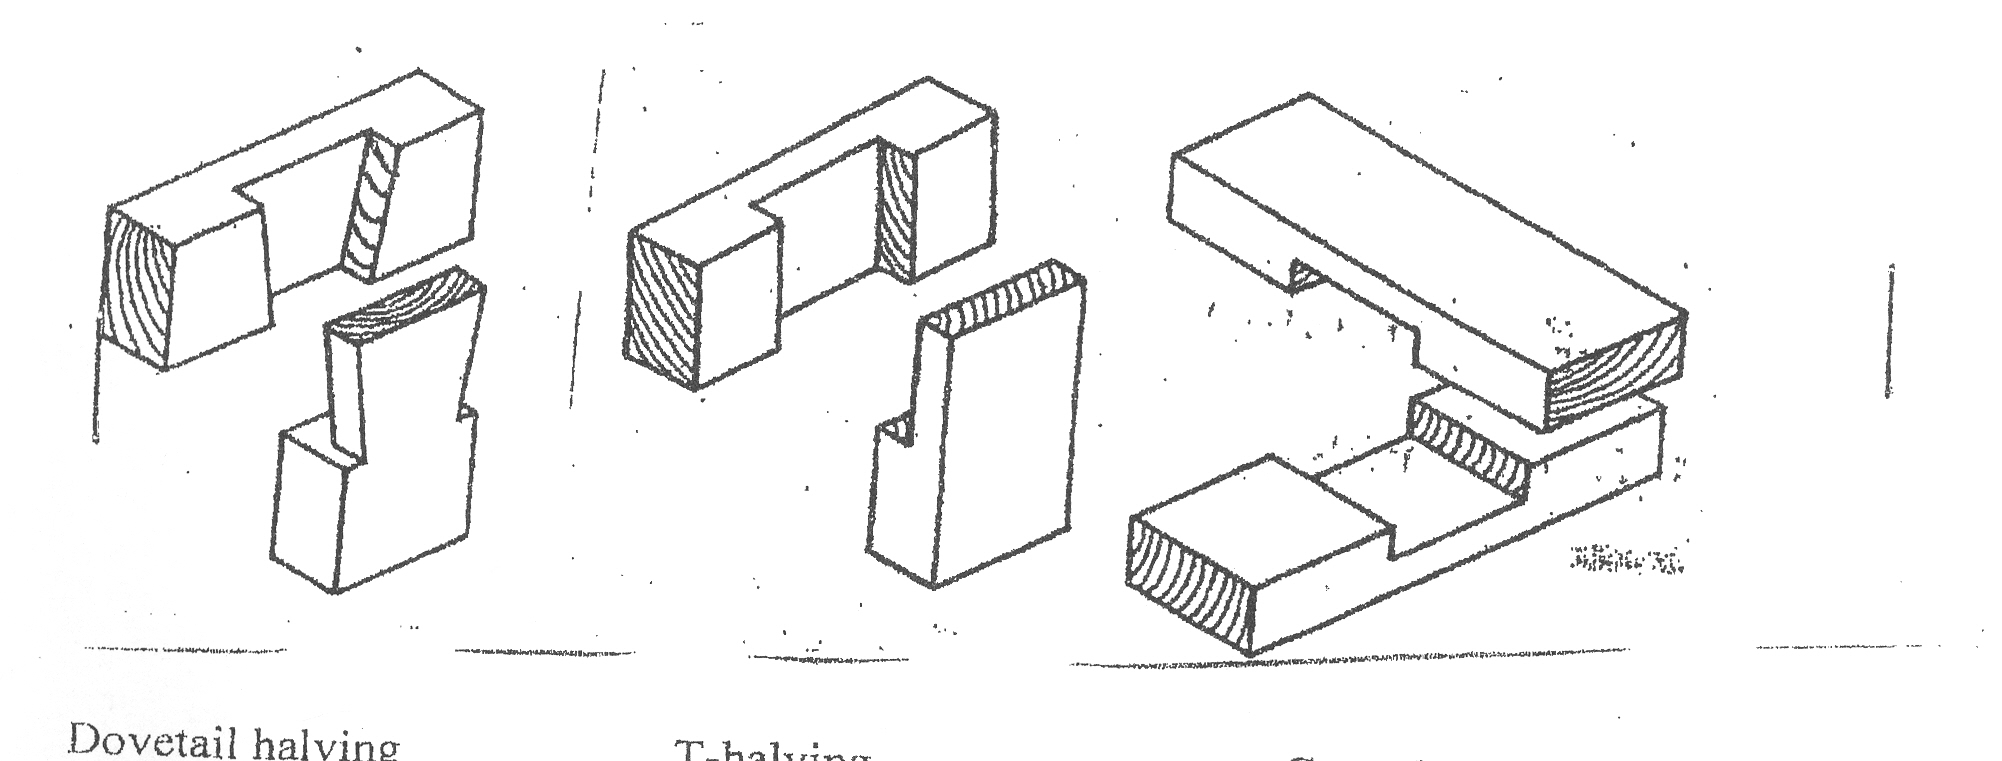 woodworking joints pdf - woodworking projects & ideas